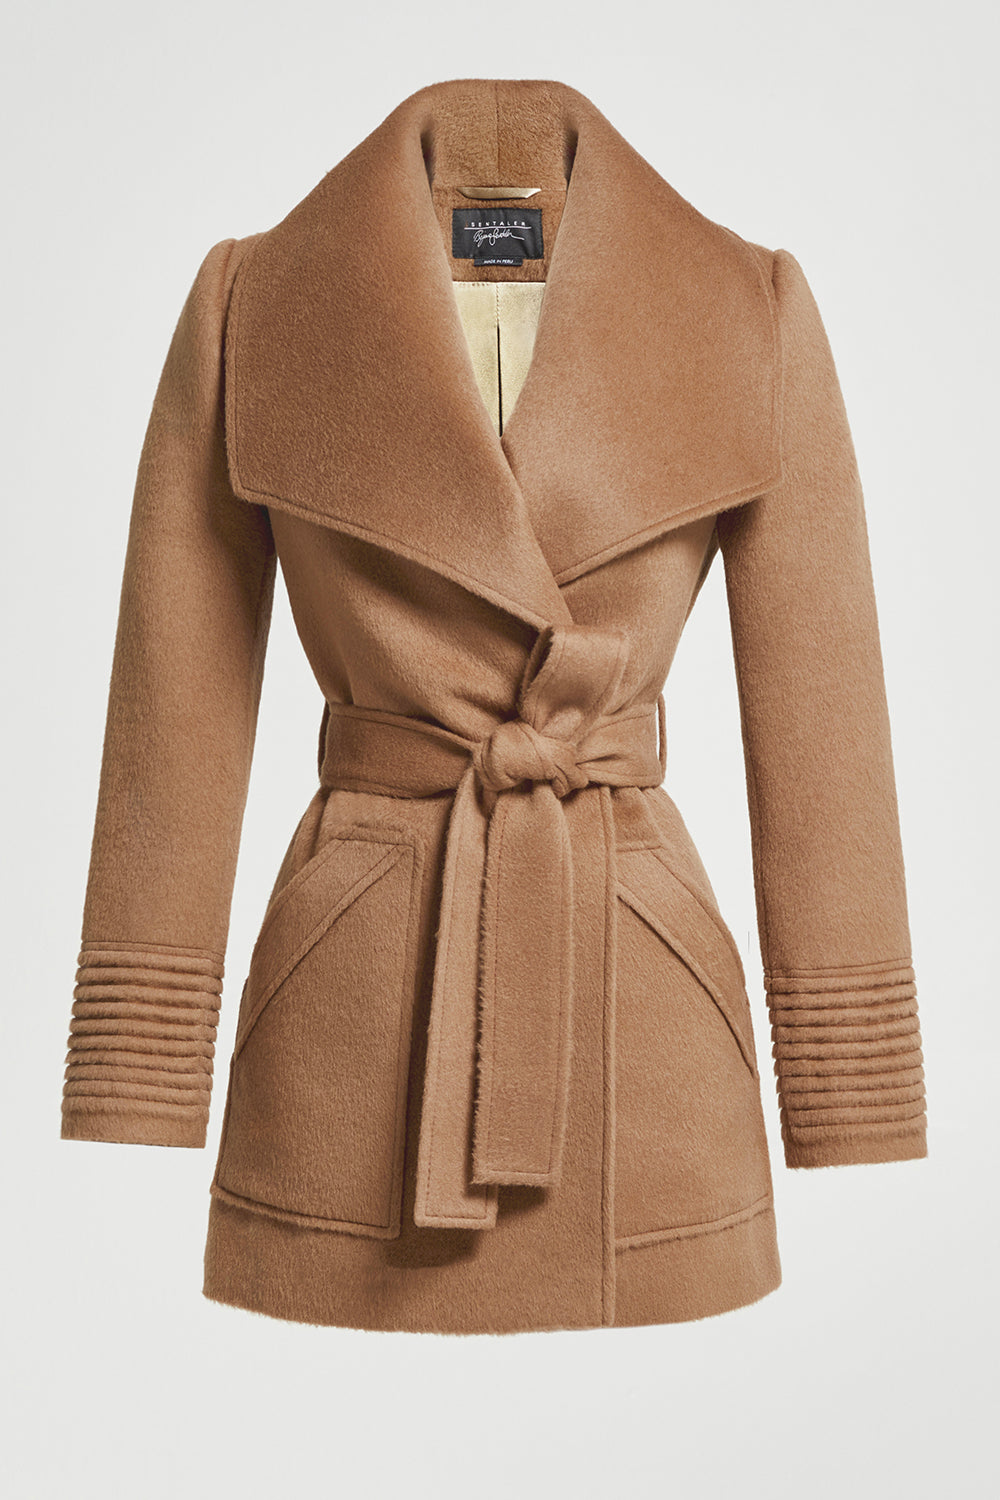 Sentaler Cropped Wide Collar Wrap Coat featured in Baby Alpaca and available in Dark Camel. Seen off model.